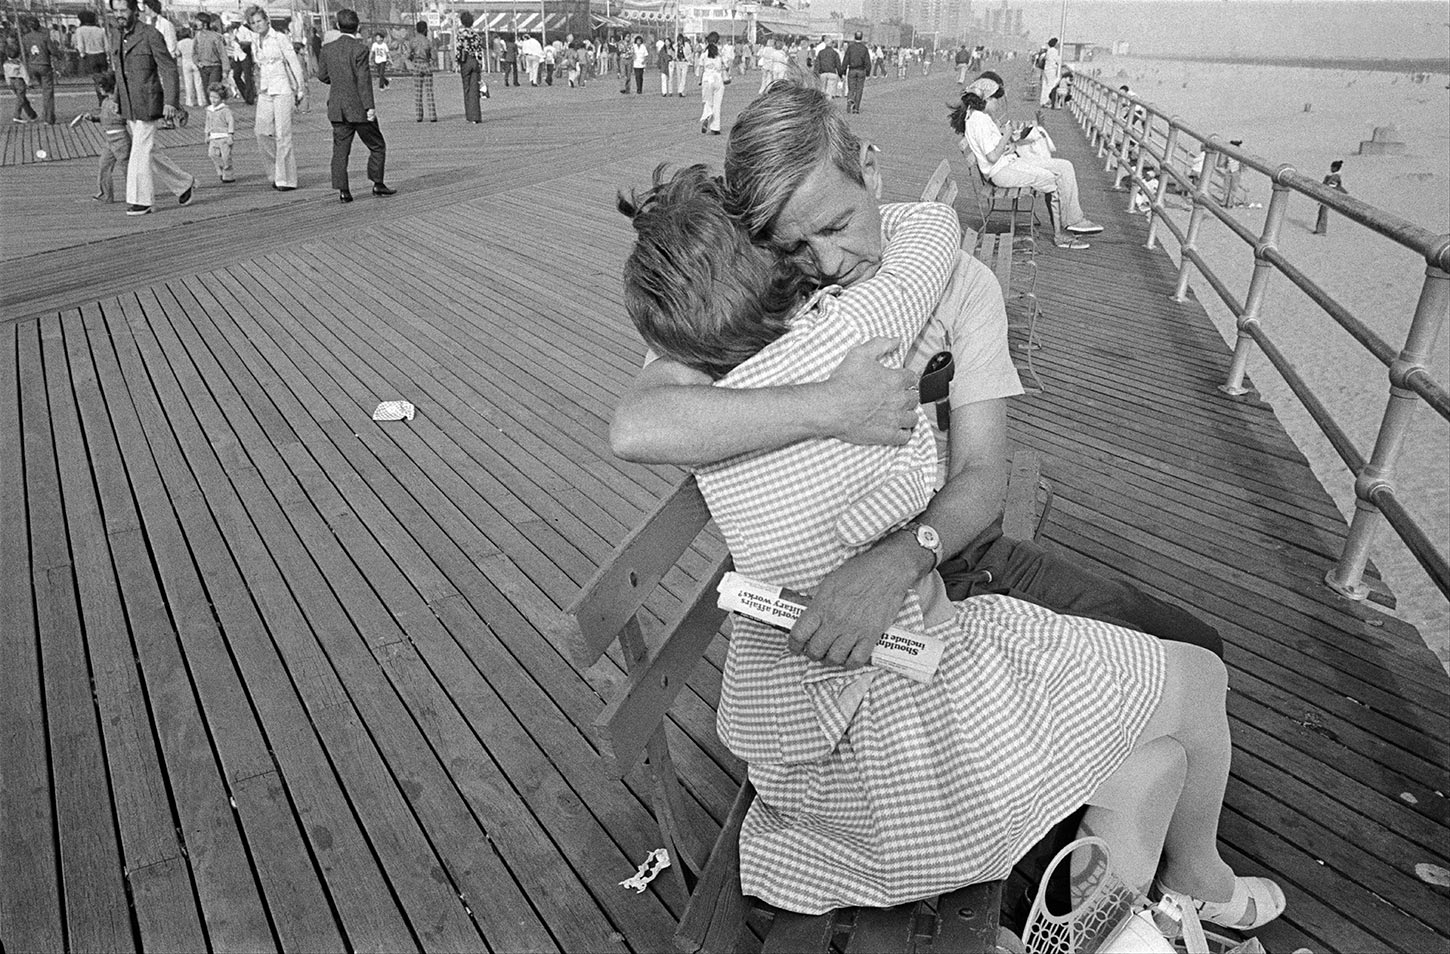 A couple embraces on the boardwalk by the beach. Coney Island, NY. USA. 1977.